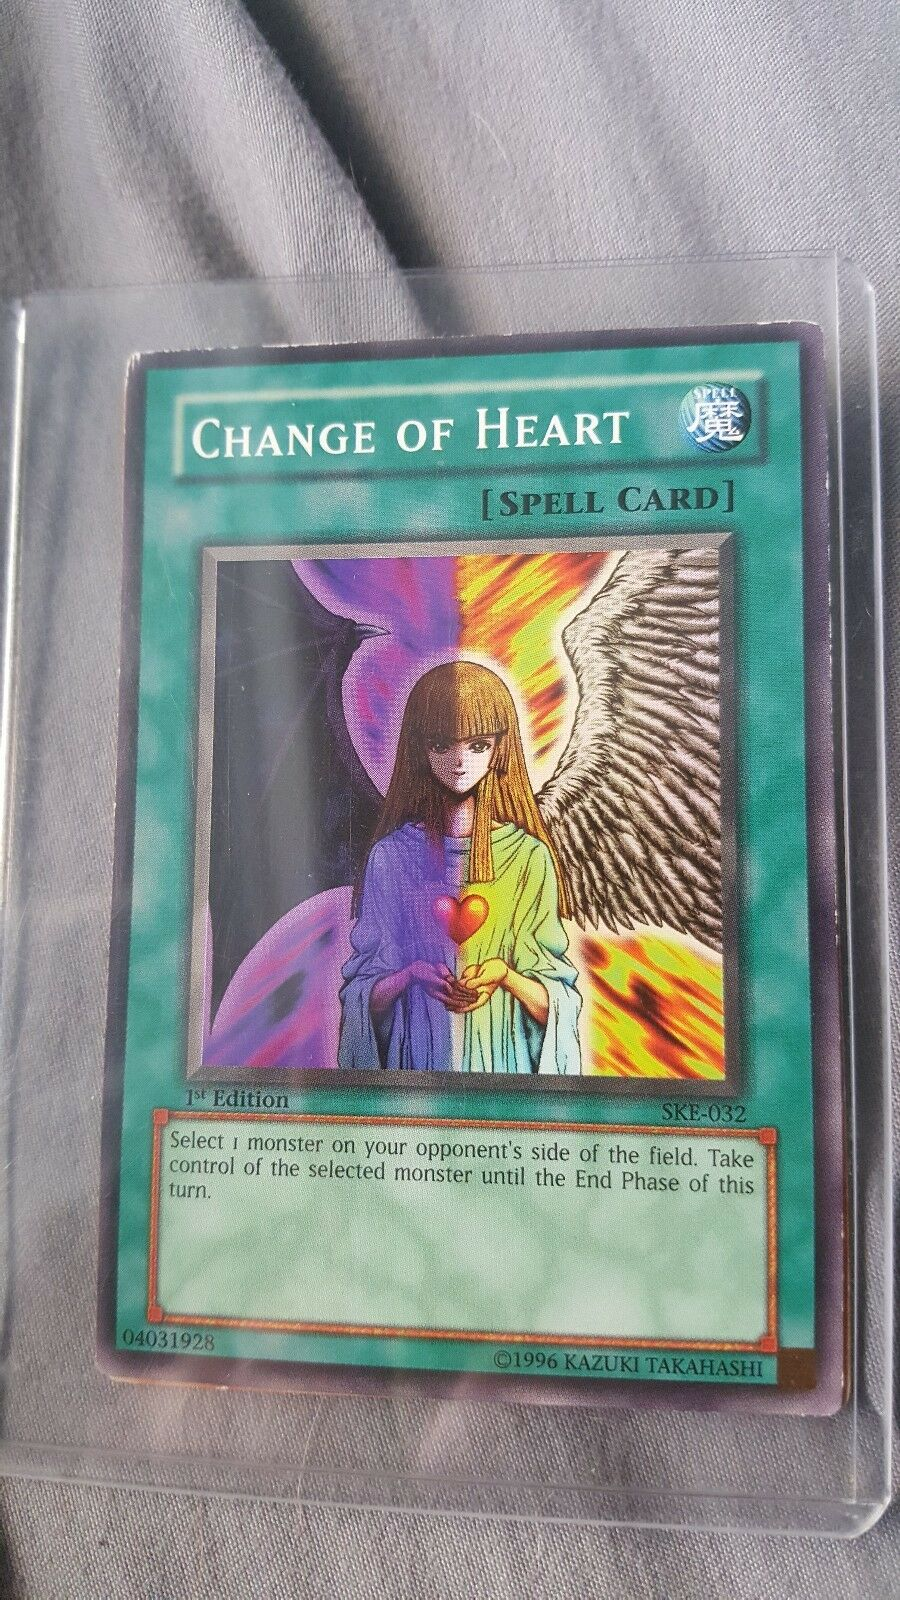 Mint condition change of heart 1st edition